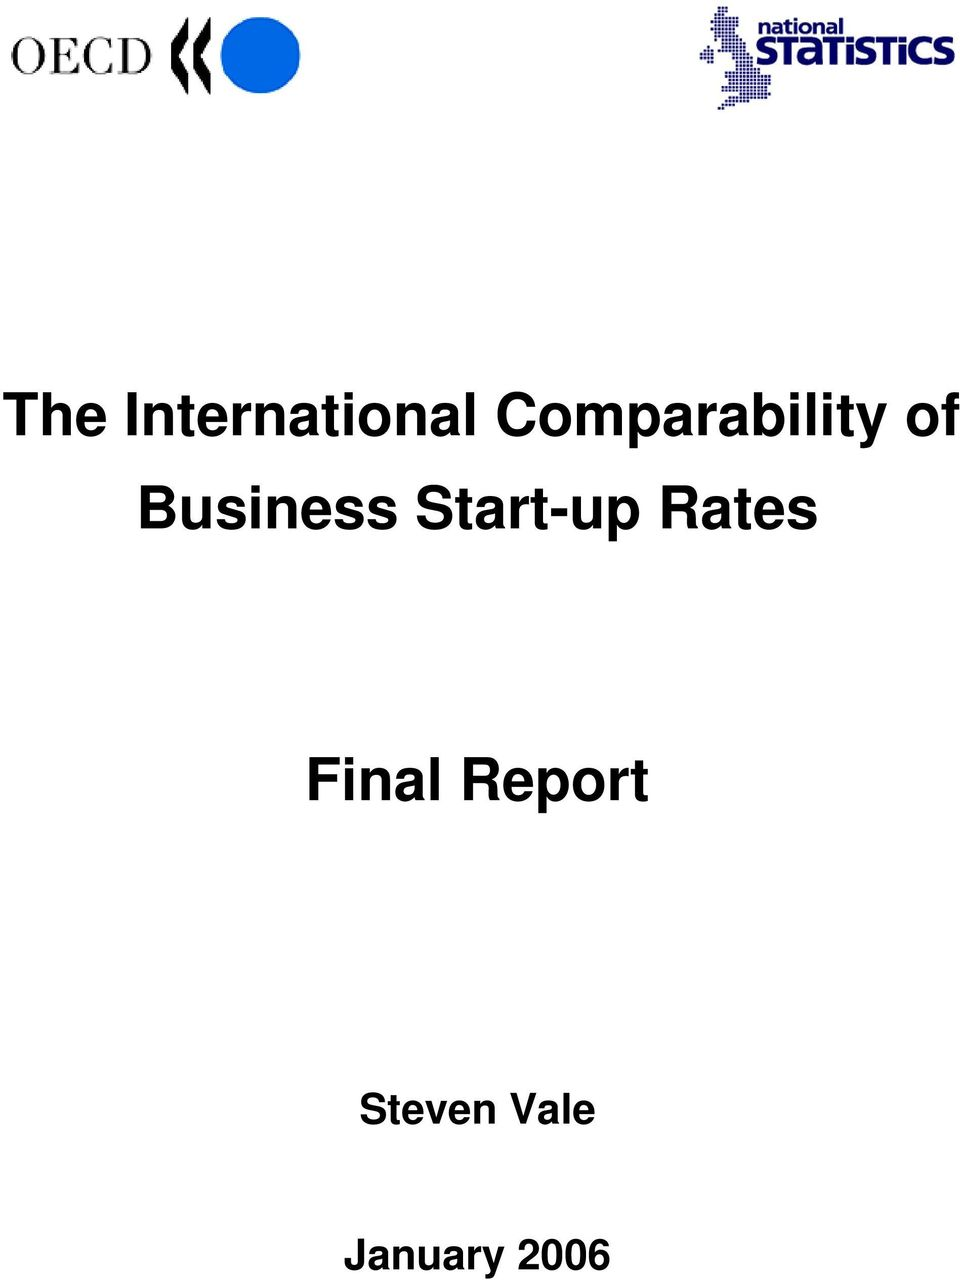 Business Start-up Rates